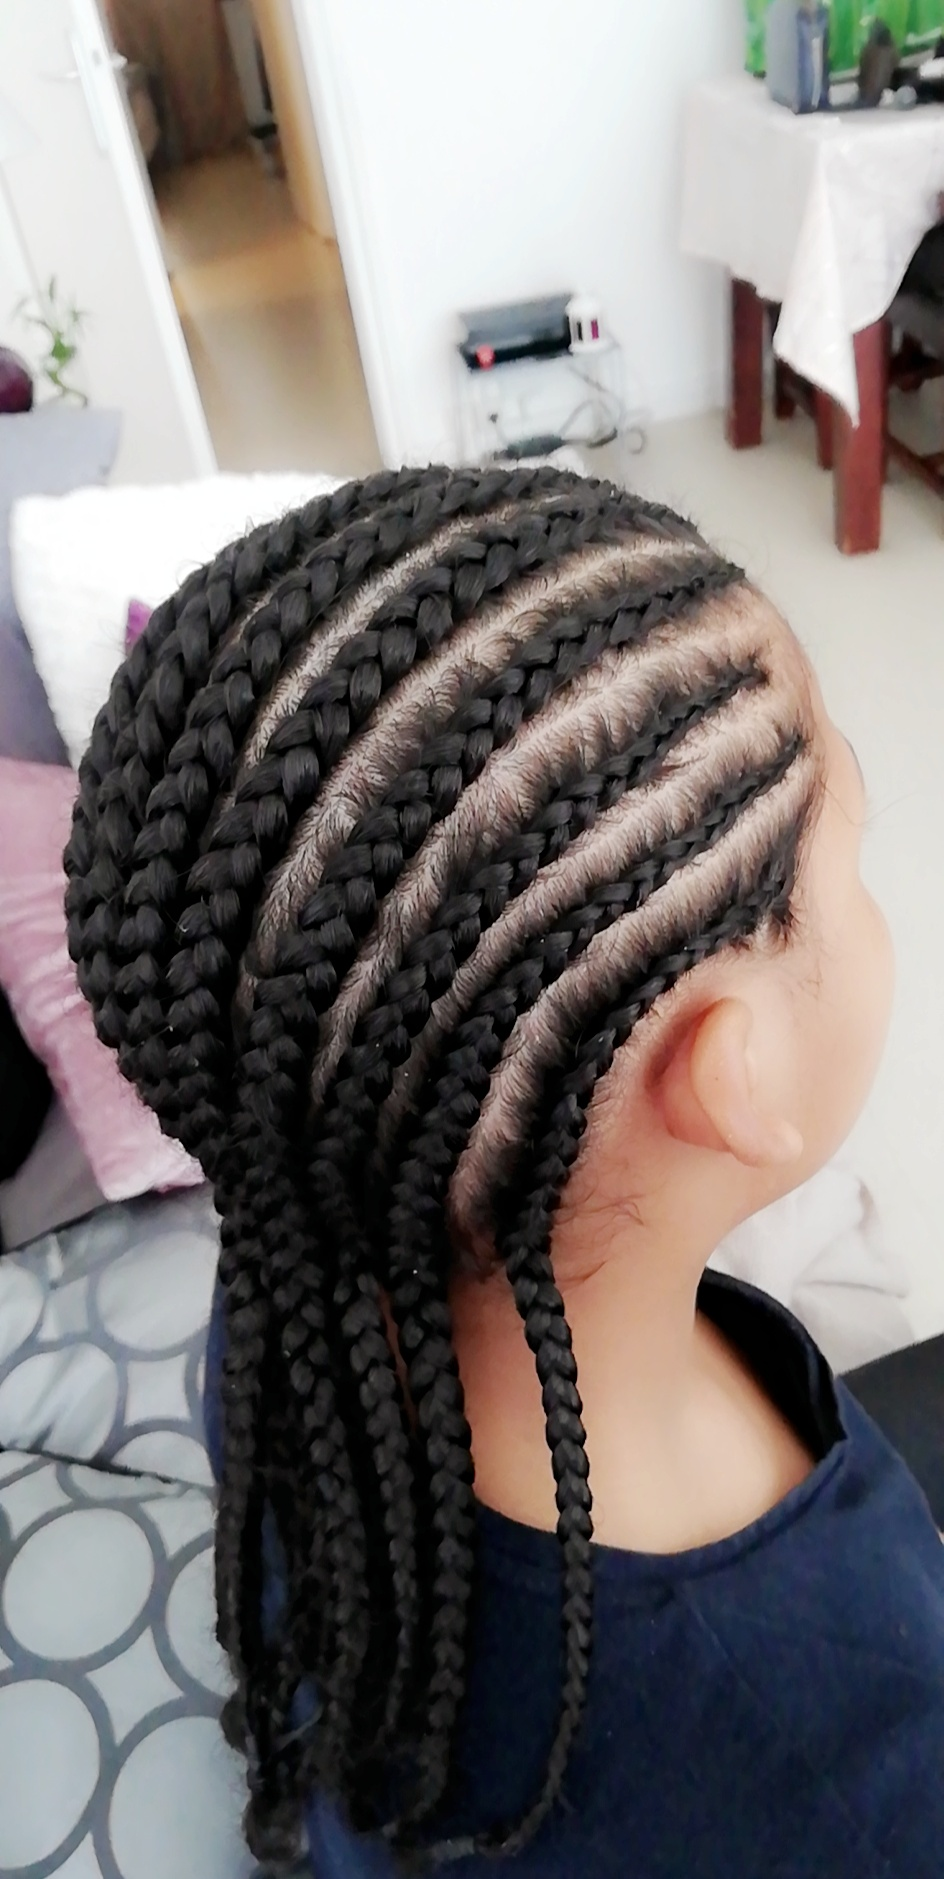 salon de coiffure afro tresse tresses box braids crochet braids vanilles tissages paris 75 77 78 91 92 93 94 95 BKEGYTKC